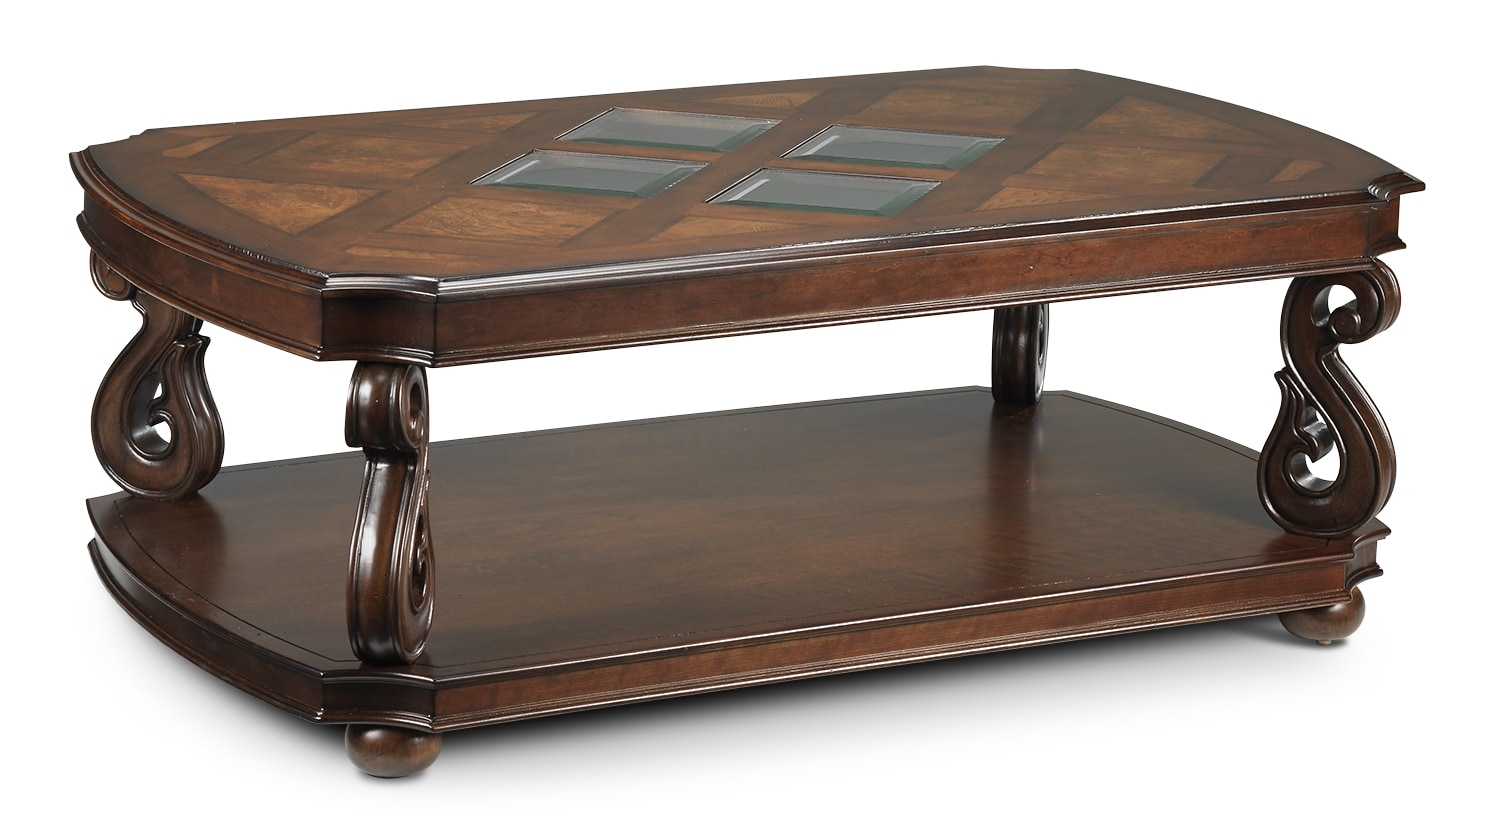 Harcourt Coffee Table - Cherry